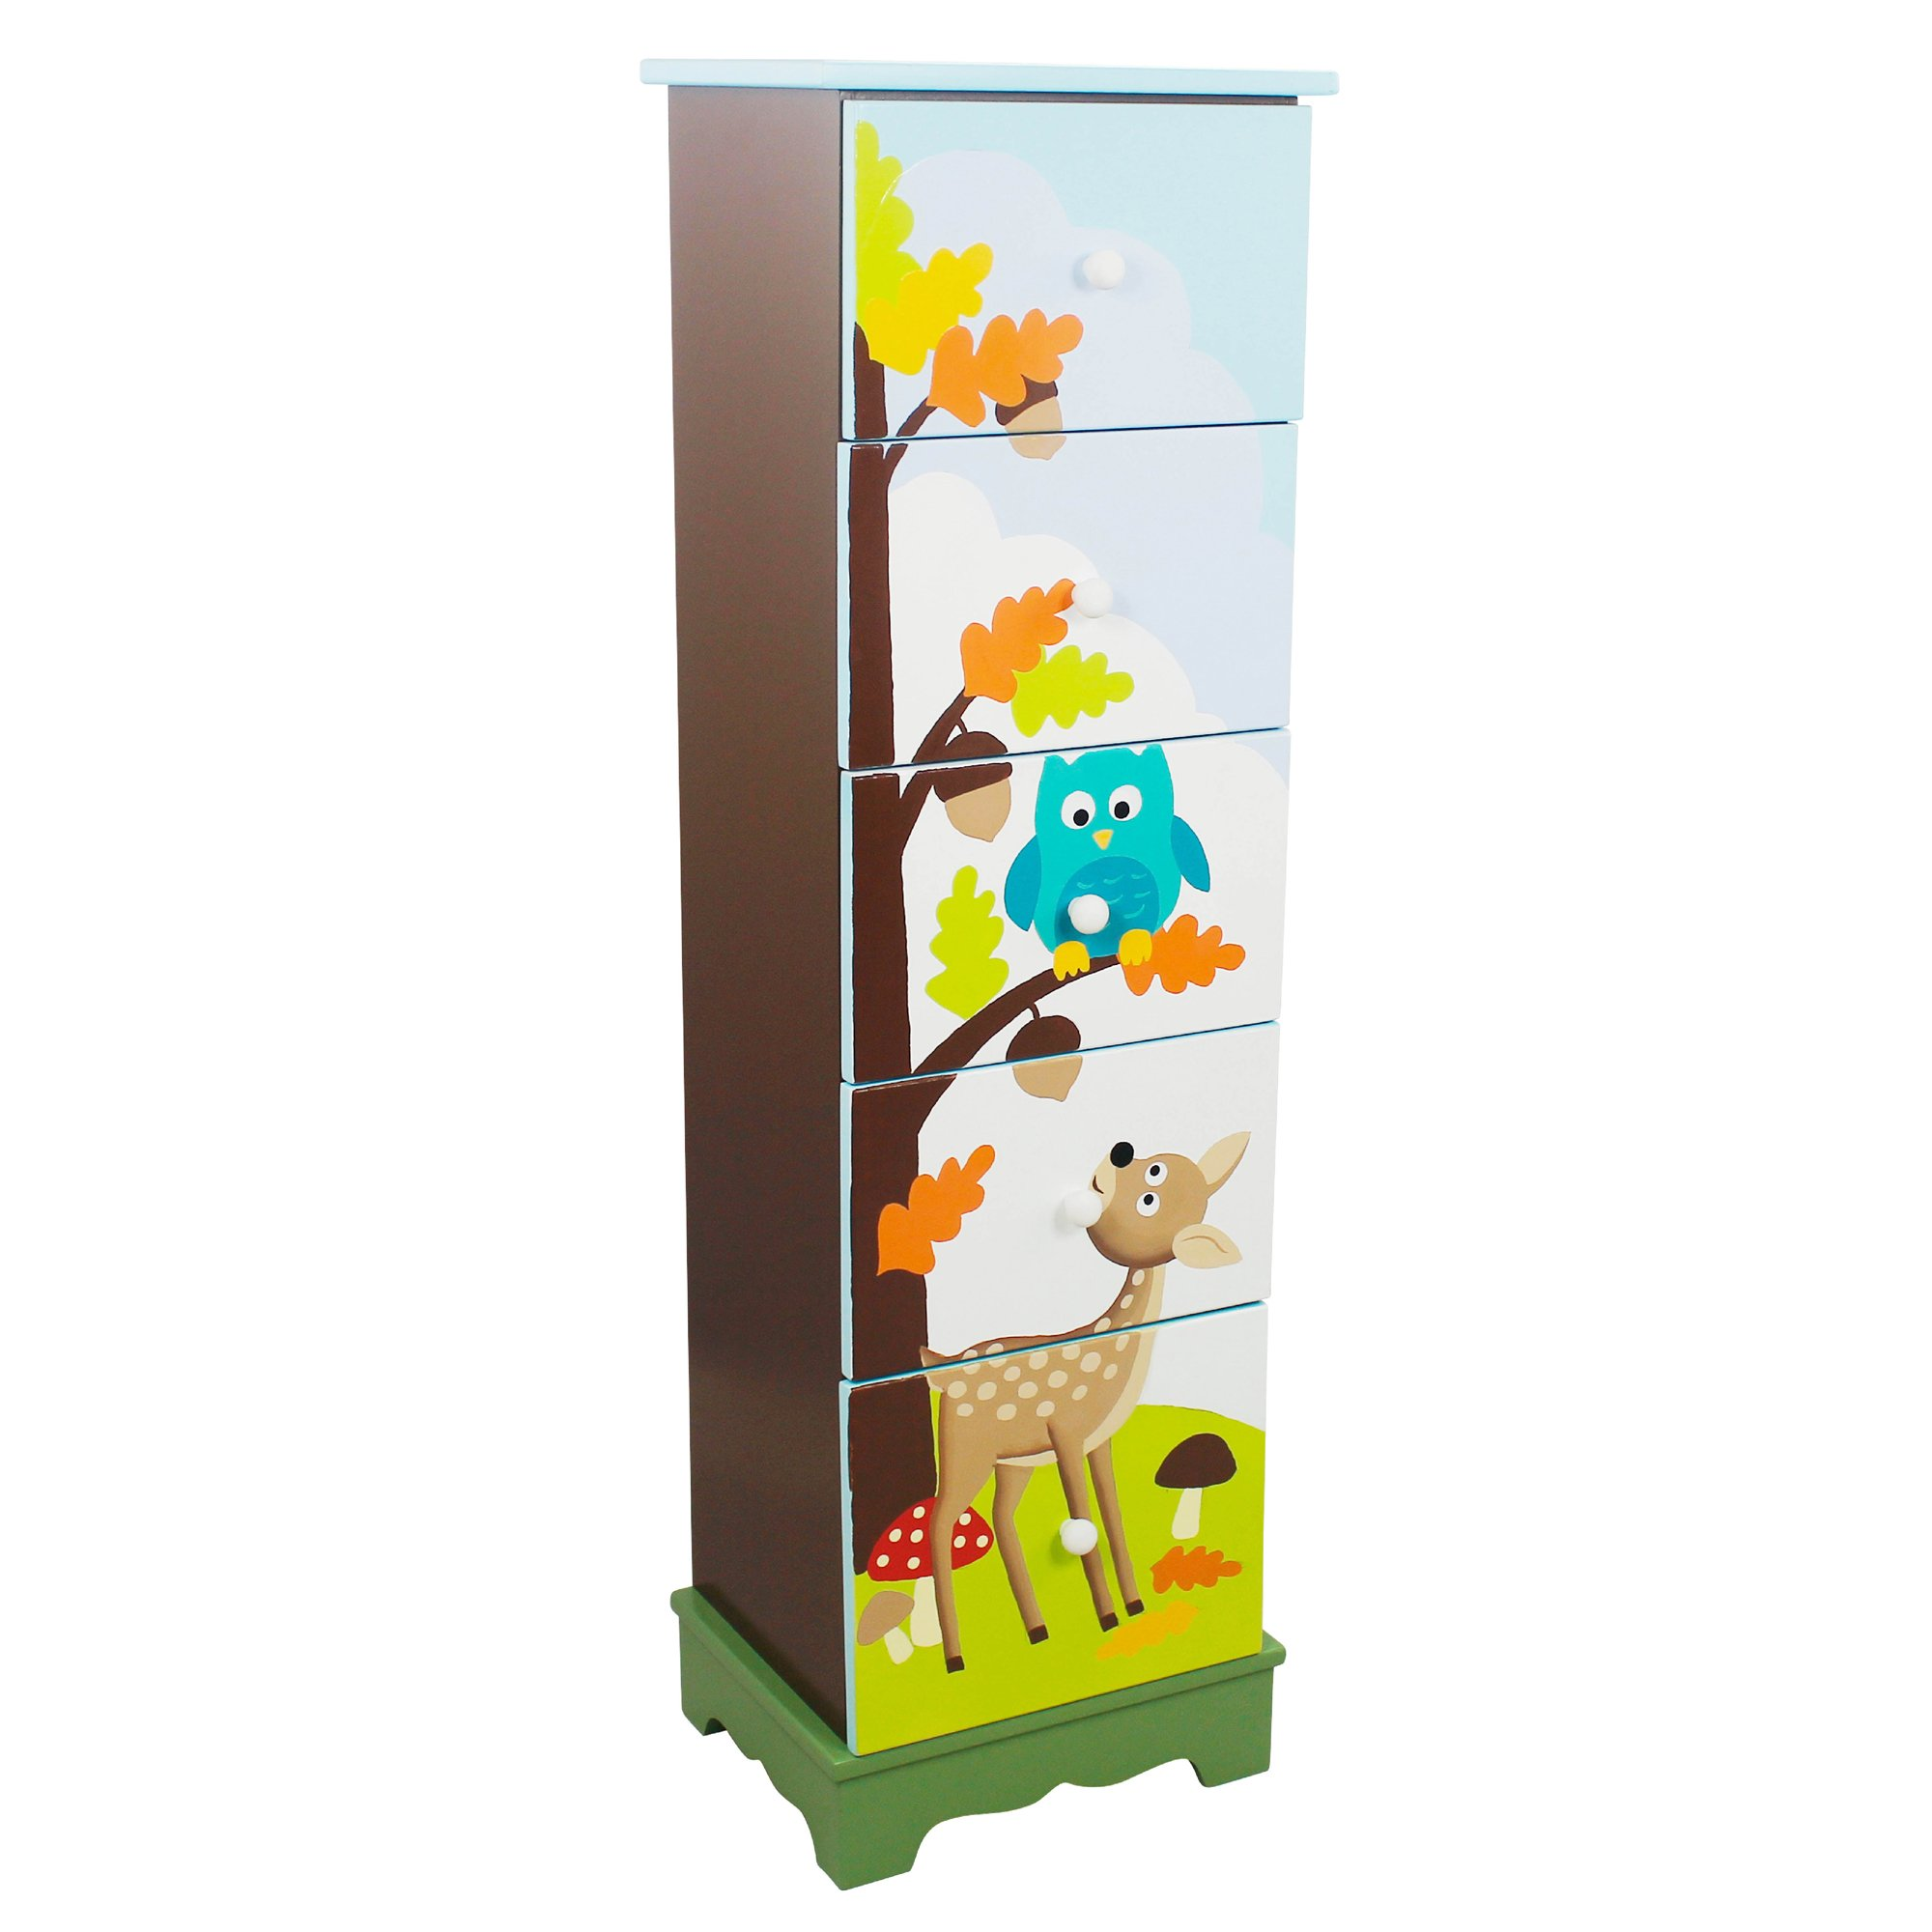 Fantasy Fields - Enchanted Woodland Thematic 5 Drawer Wooden Cabinet for Kids Storage | Imagination Inspiring  Hand Crafted & Painted Details | Non-Toxic, Lead Free Water-based Paint by Fantasy Fields